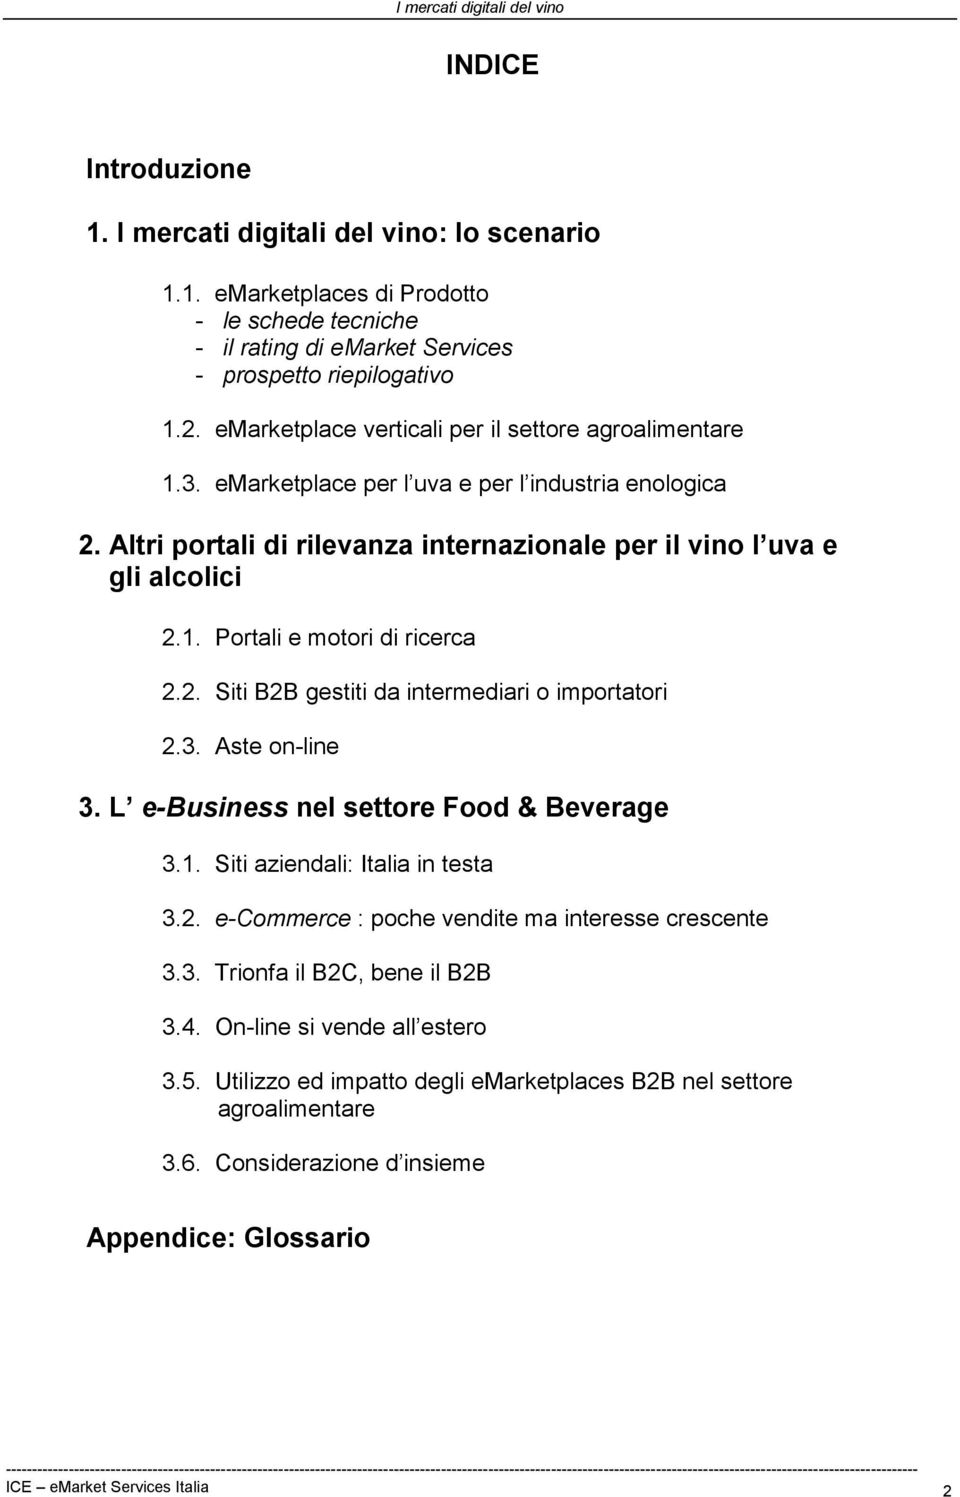 2. Siti B2B gestiti da intermediari o importatori 2.3. Aste on-line 3. L e-business nel settore Food & Beverage 3.1. Siti aziendali: Italia in testa 3.2. e-commerce : poche vendite ma interesse crescente 3.